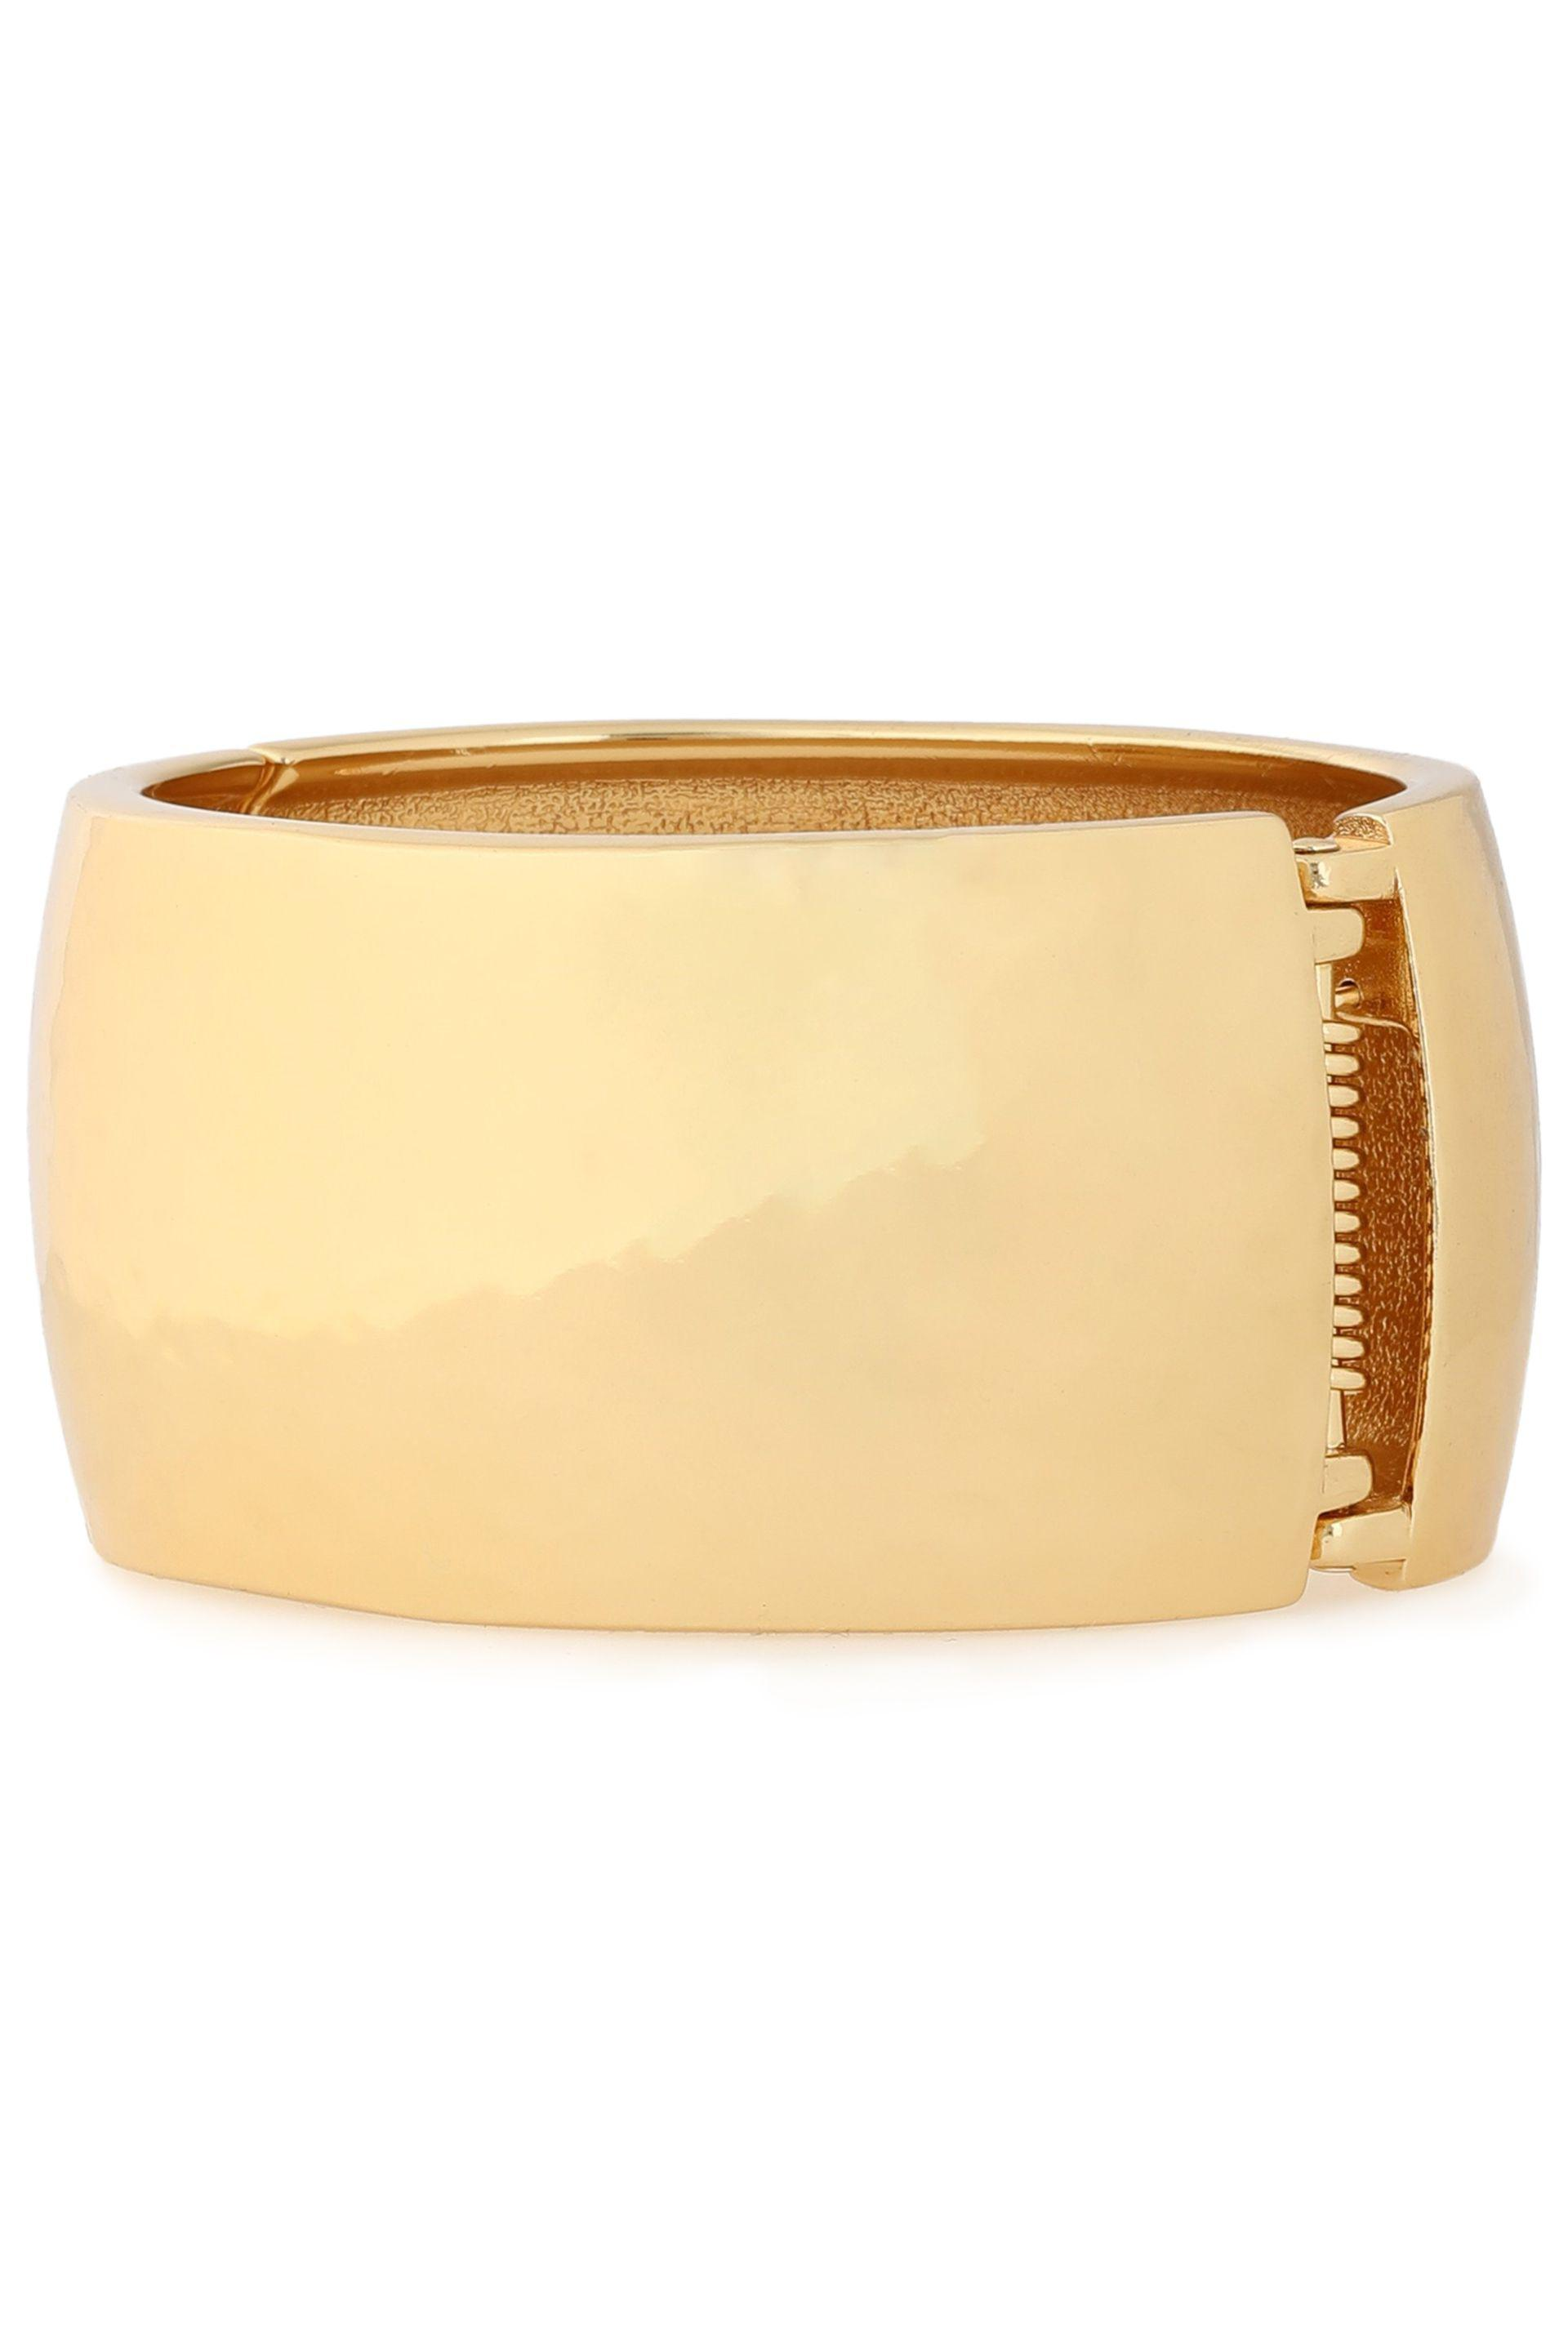 Kenneth Jay Lane Woman Gold-tone Cuff Gold in Metallic